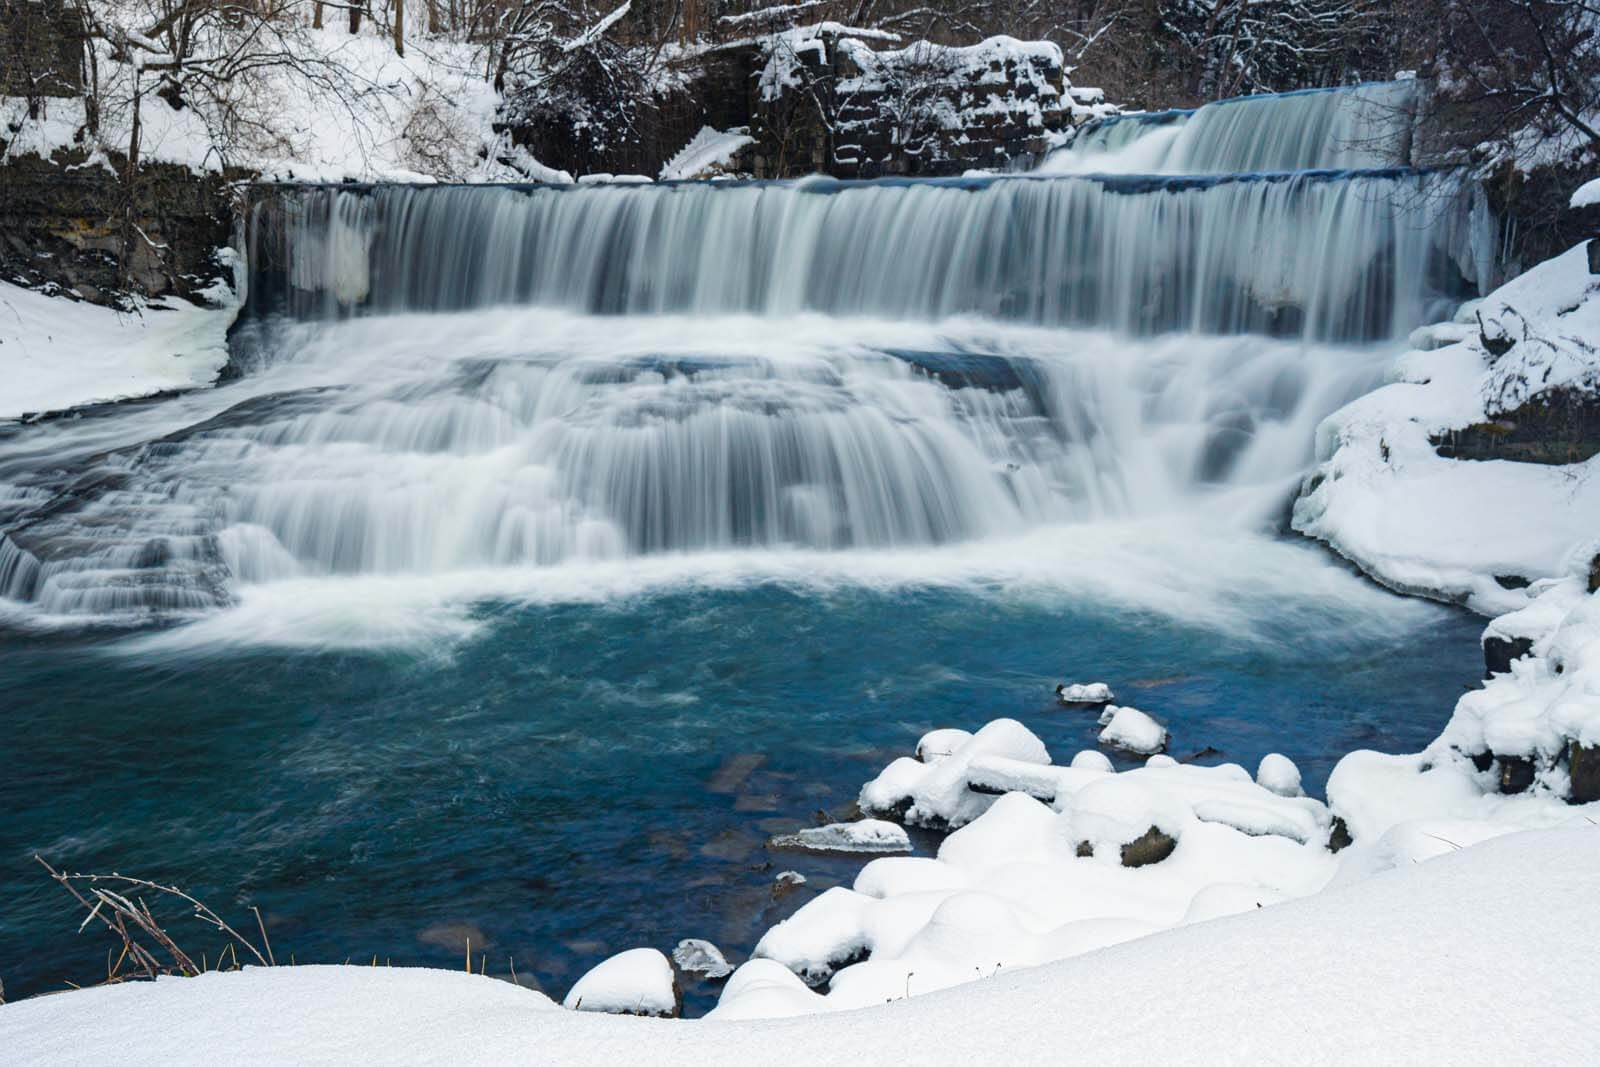 Seneca Mills Waterfall on the Keuka Outlet Trail in winter in Finger Lakes Wine Country New York